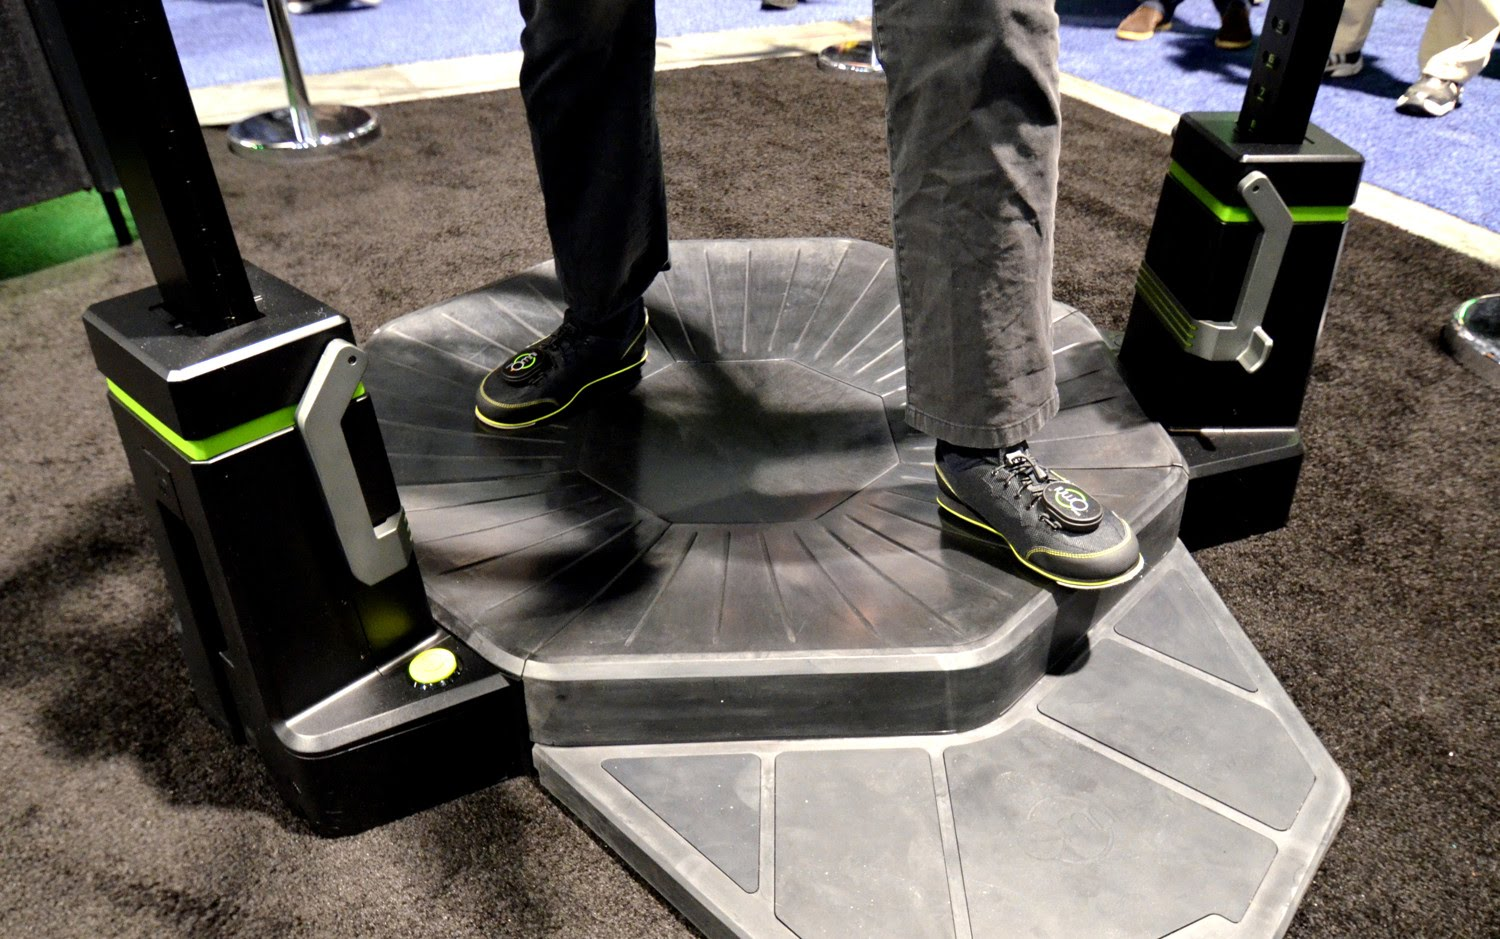 Hands-on With Virtuix Omni VR Treadmill Production Model (video)